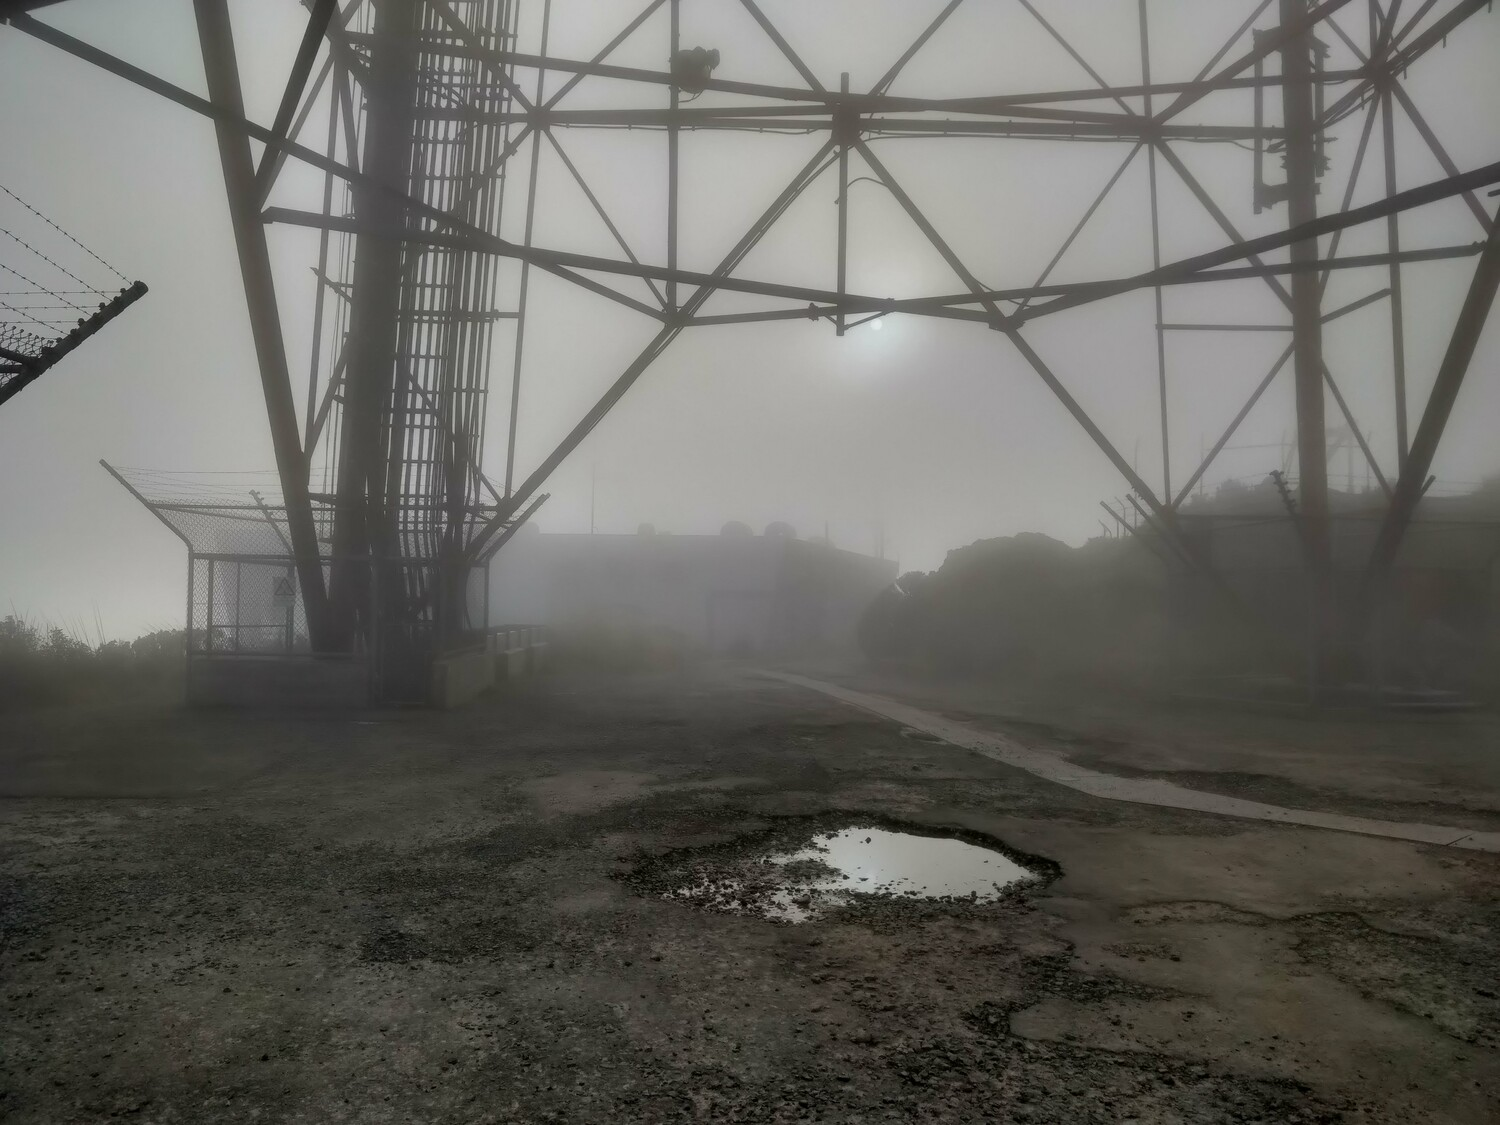 Standing underneath the tower. There is the outline of a grey building visible in the grey mist. The sun weakly shines through, a perfect dim circle that's comfortable to look directly at. The ground is gravel with an unattractive puddle in the middle of it.